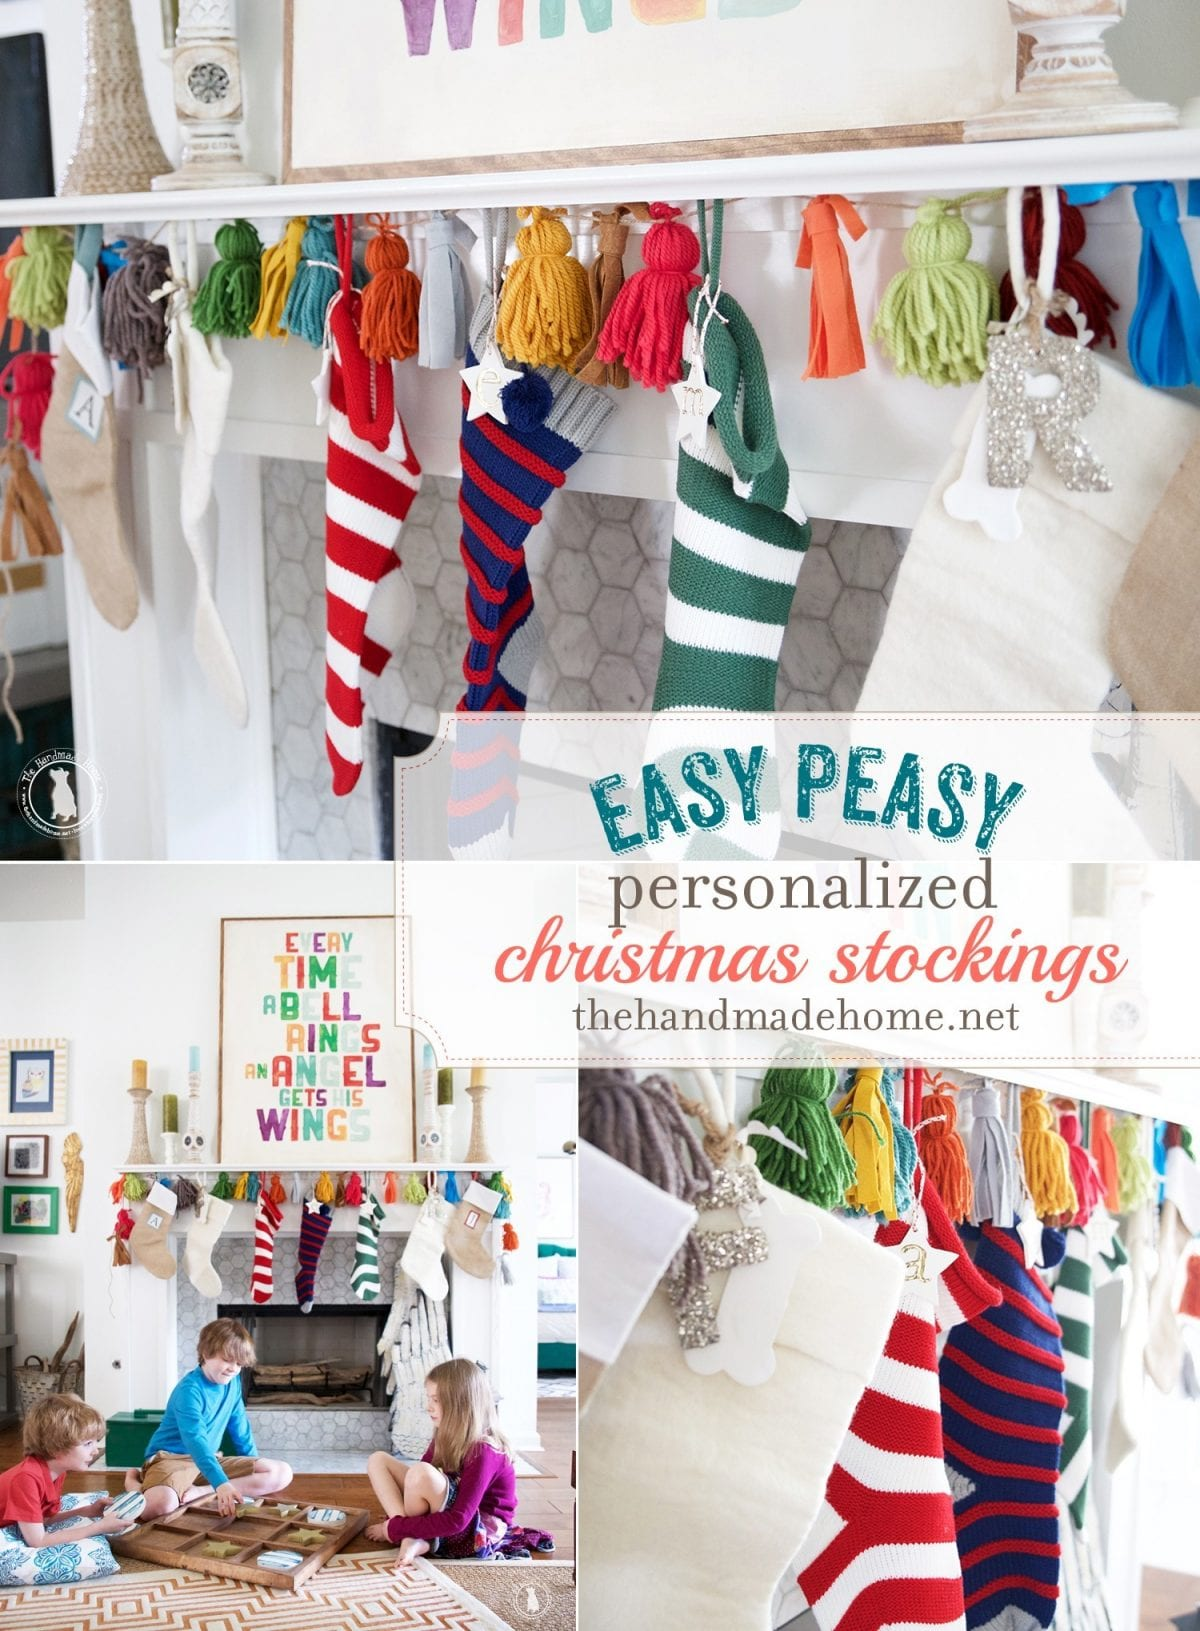 easy_peasy_personalized_christmas_stockings